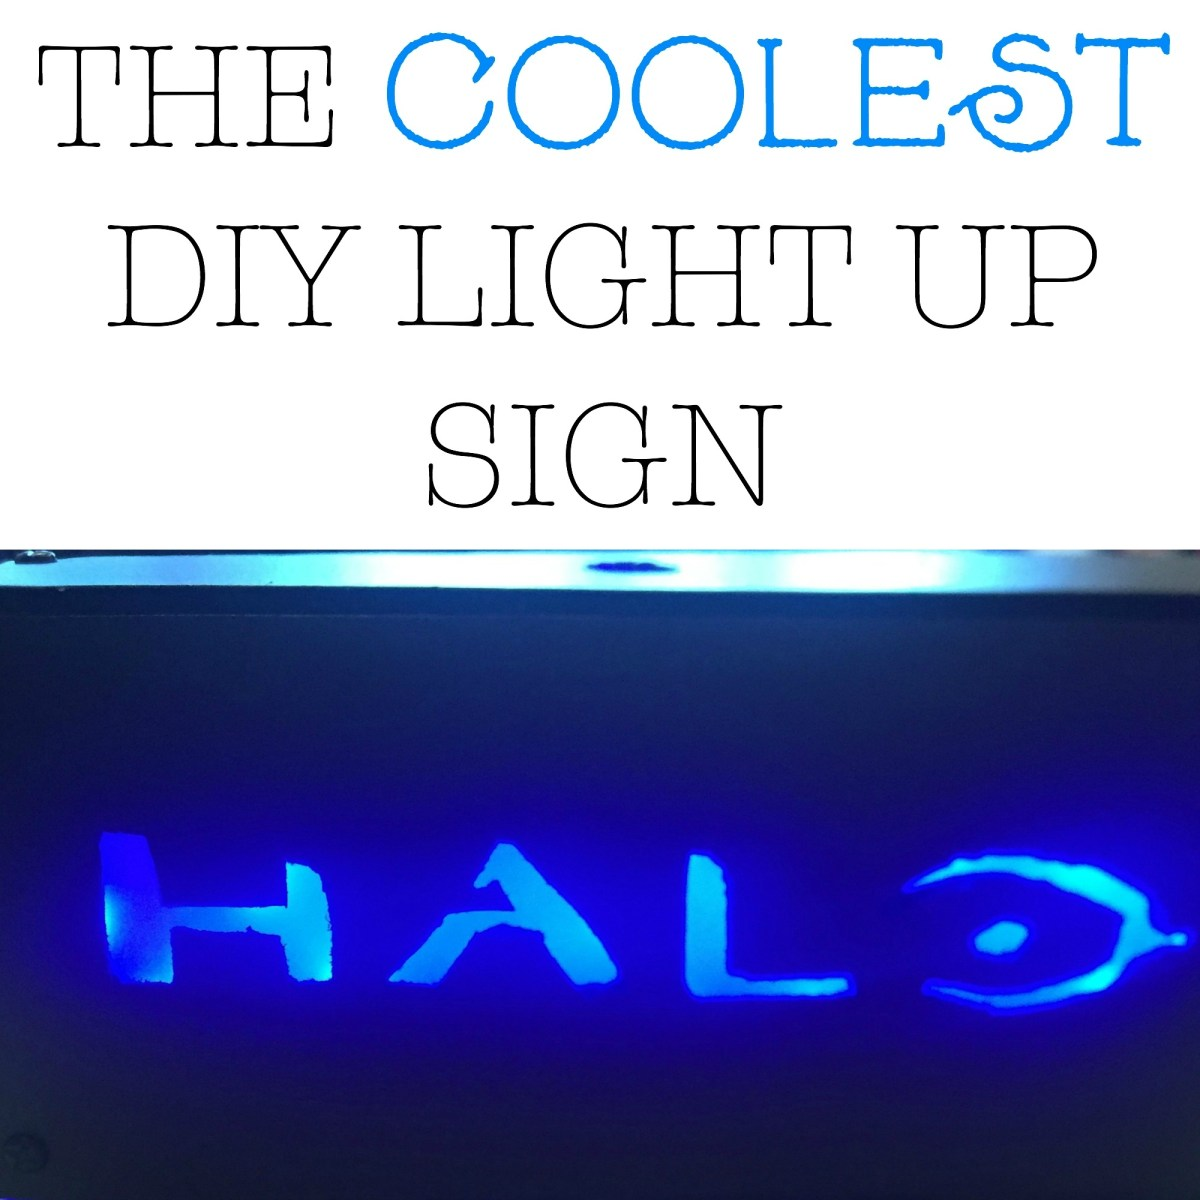 THE COOLEST DIY LIGHT UP SIGN